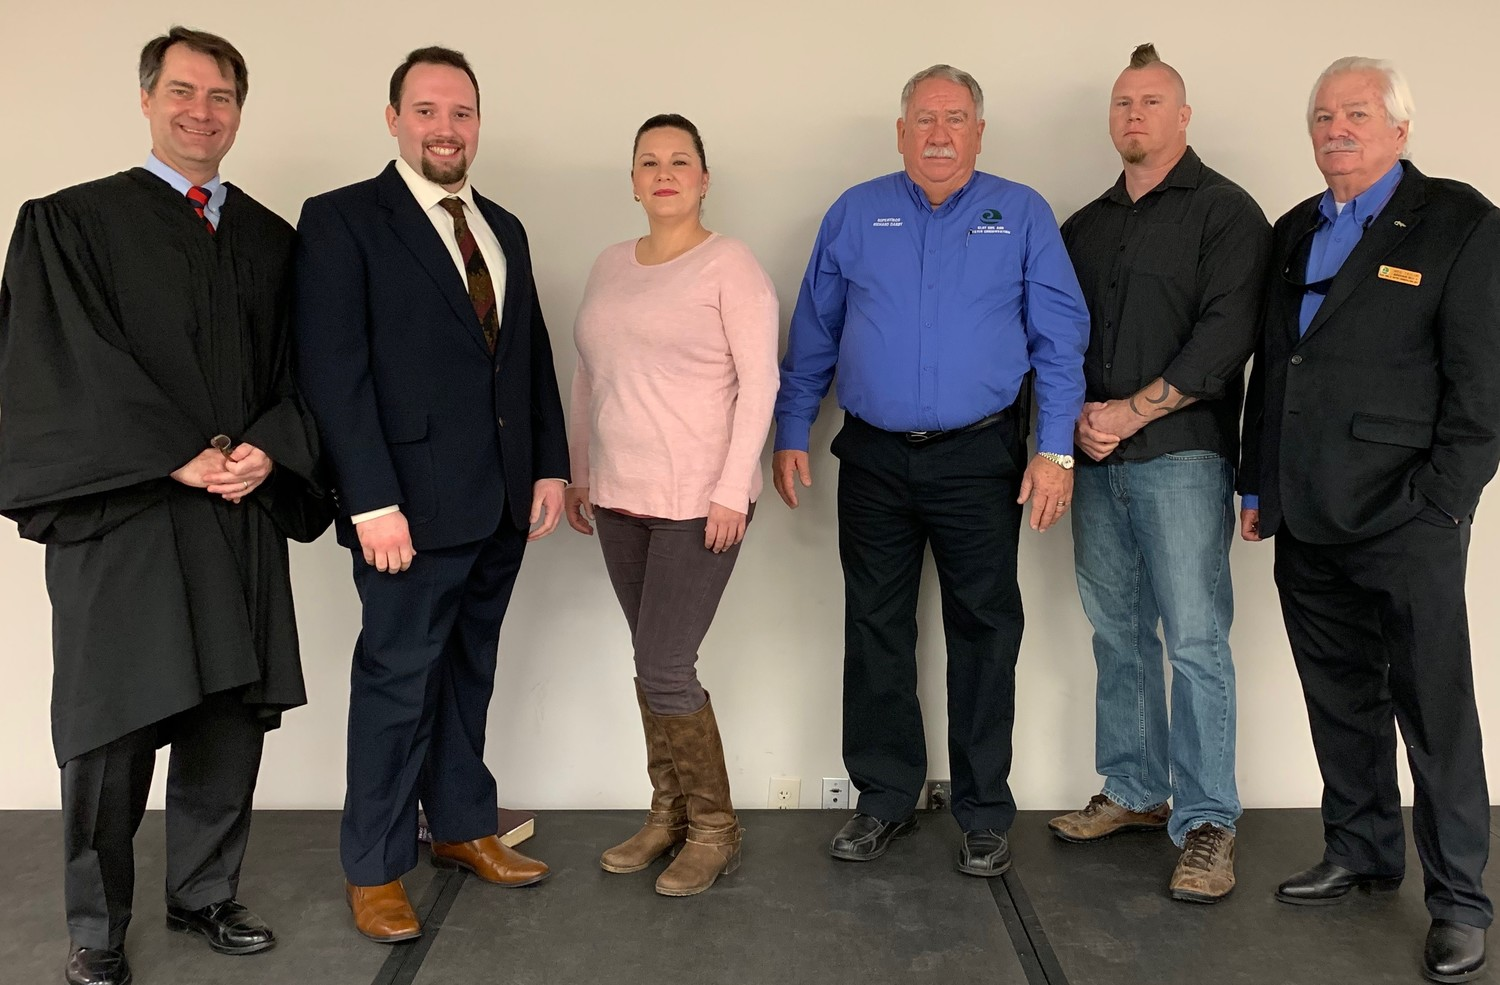 From left, Fourth Judicial Court Judge Michael Sharrit, Seat 2 Supervisor Ted Clark, Cassandra Shaw, Richard Darby, Michael Cassidy and Wes Taylor.